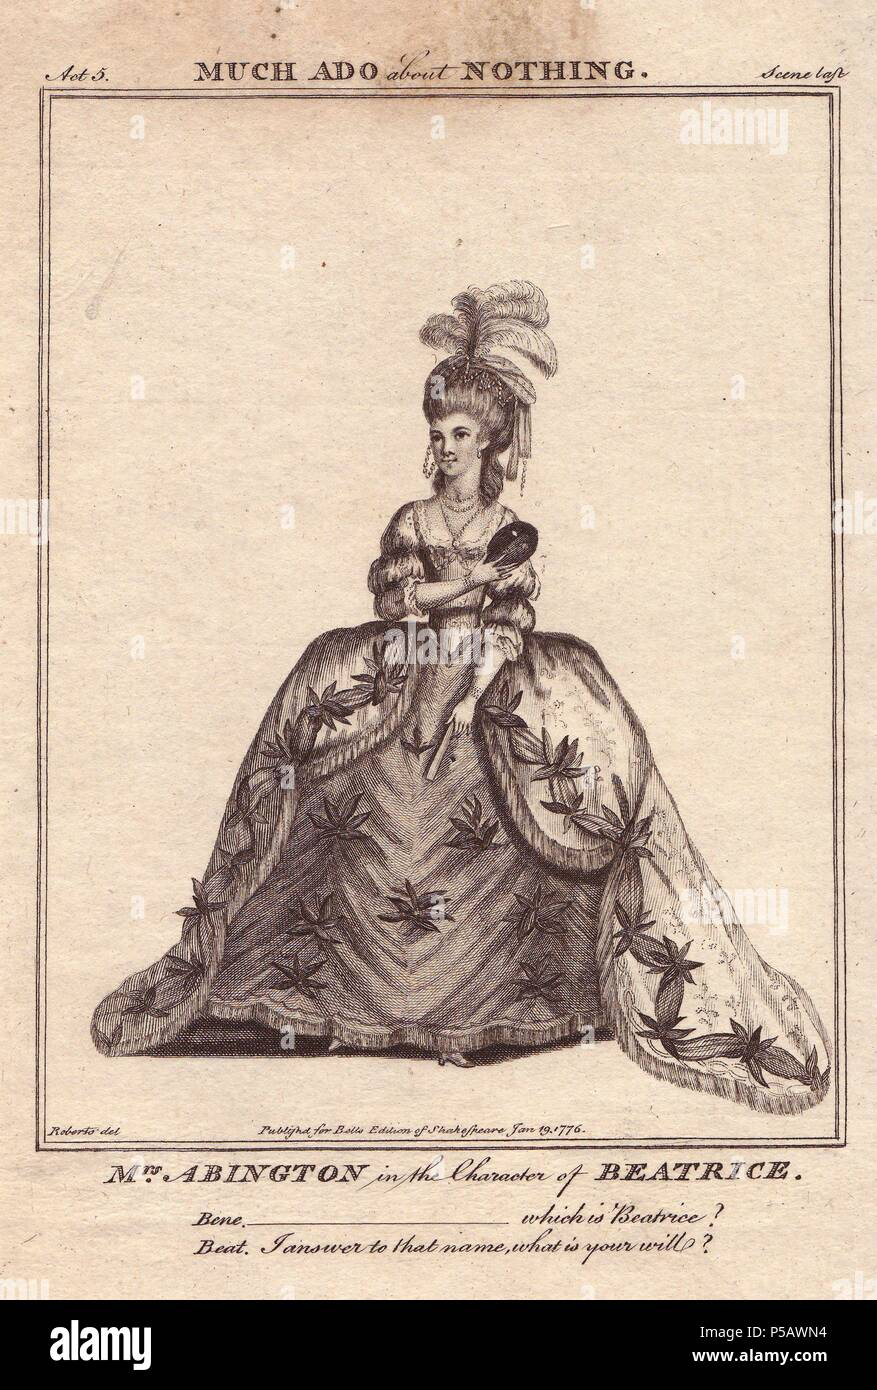 Frances Abington as Beatrice in 'Much Ado About Nothing.'. . Abington played Beatrice for the first time in 1775 opposite David Garrick at Drury Lane to 'very great applause.'. . Copperplate engraving from 'Bell's Shakespeare' published by John Bell, London, from 1776. Drawn by James Roberts. - Stock Image